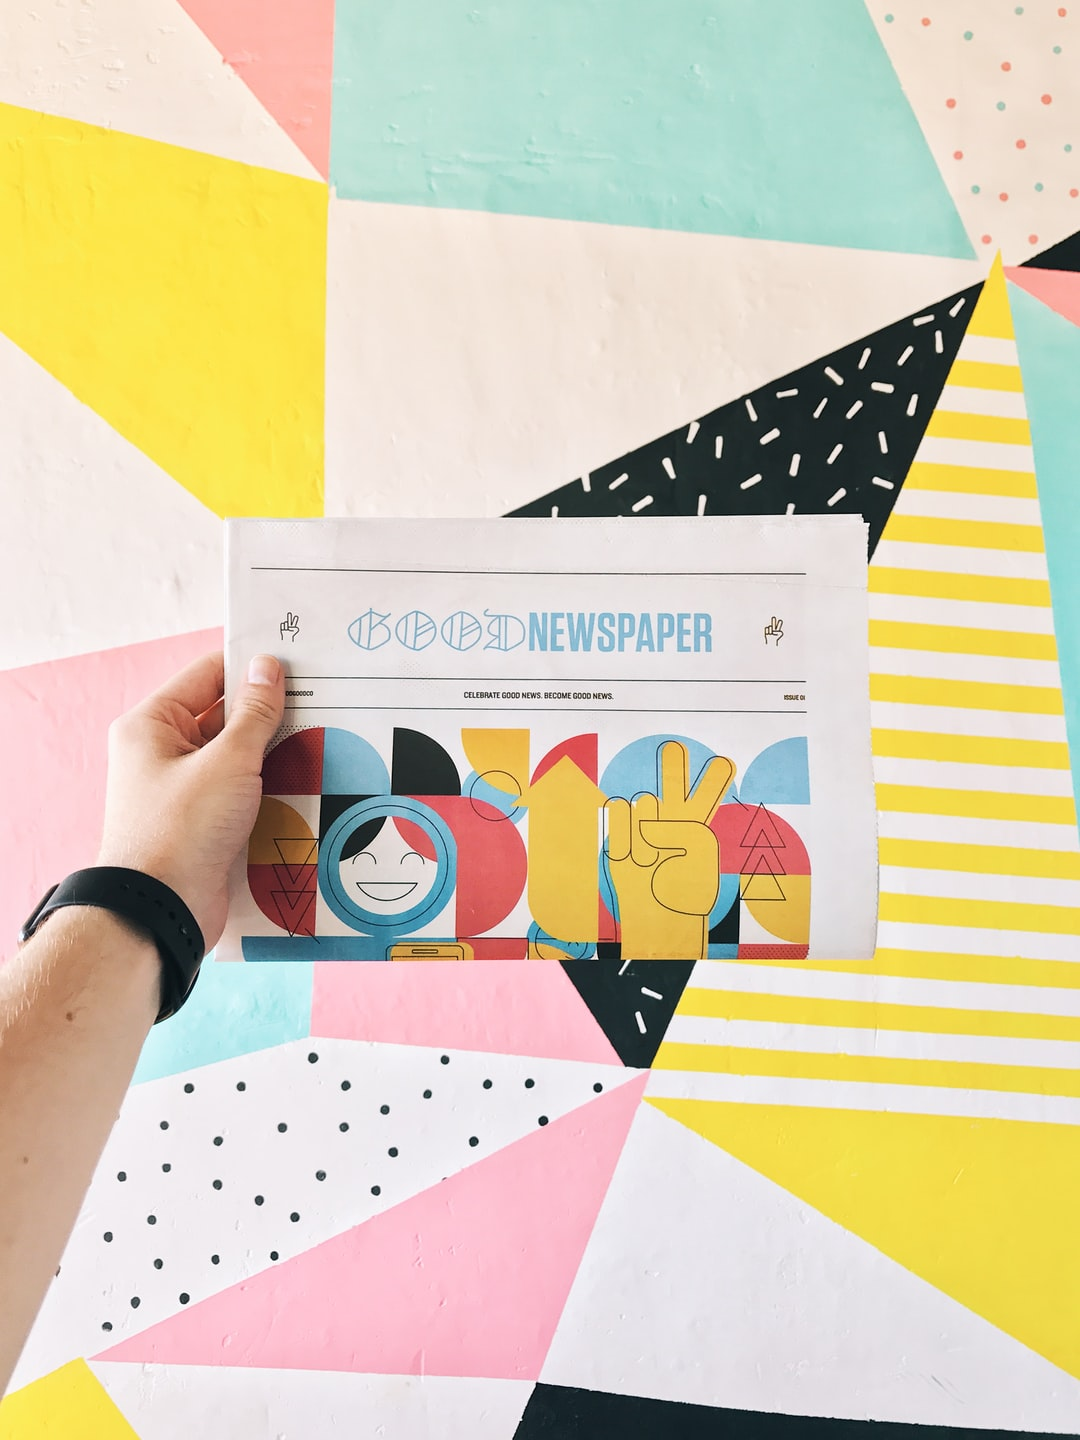 """A """"Good Newspaper,"""" being held up in front of an abstract, colorful patterned floor."""